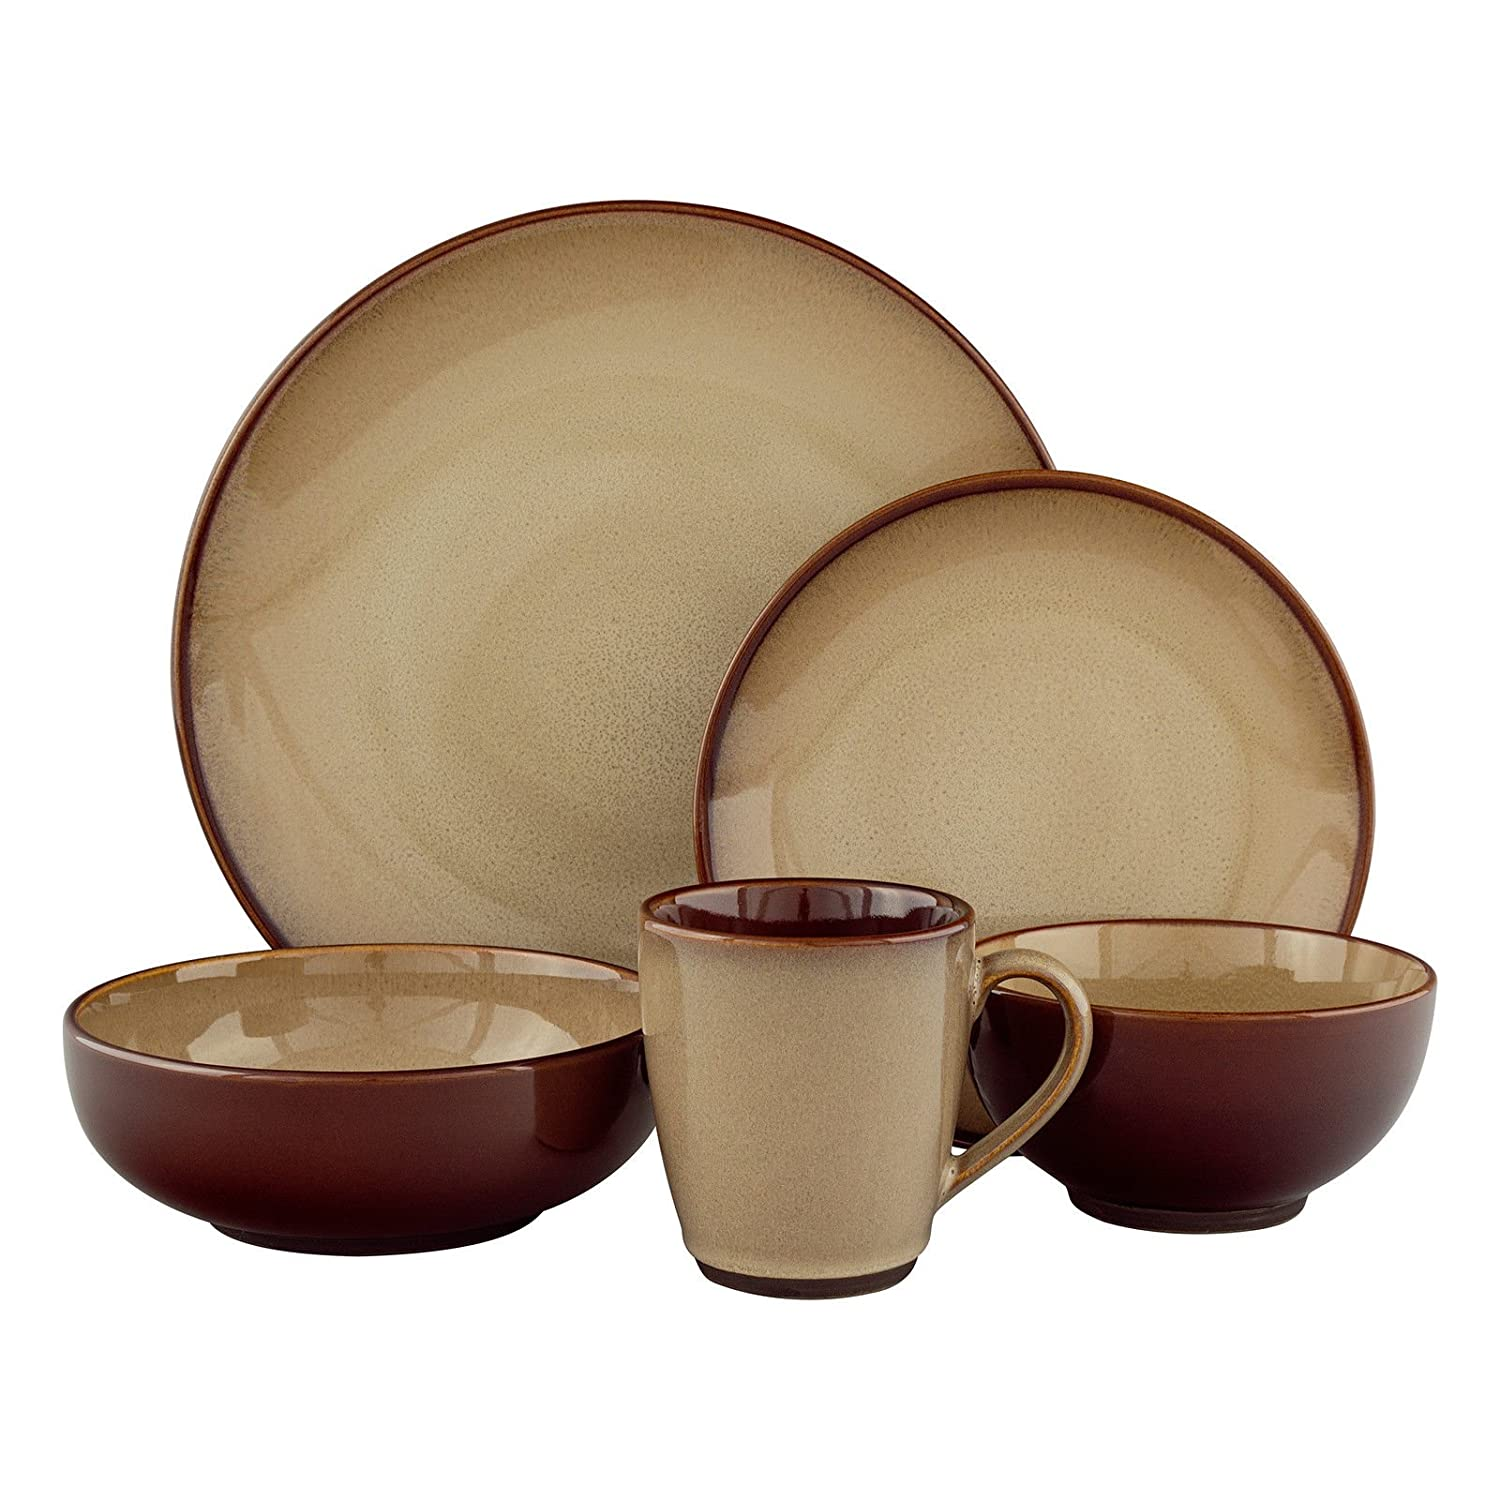 Sango 40-piece Nova Brown Stoneware Dinnerware Set Amazon.co.uk Kitchen \u0026 Home  sc 1 st  Amazon UK & Sango 40-piece Nova Brown Stoneware Dinnerware Set: Amazon.co.uk ...